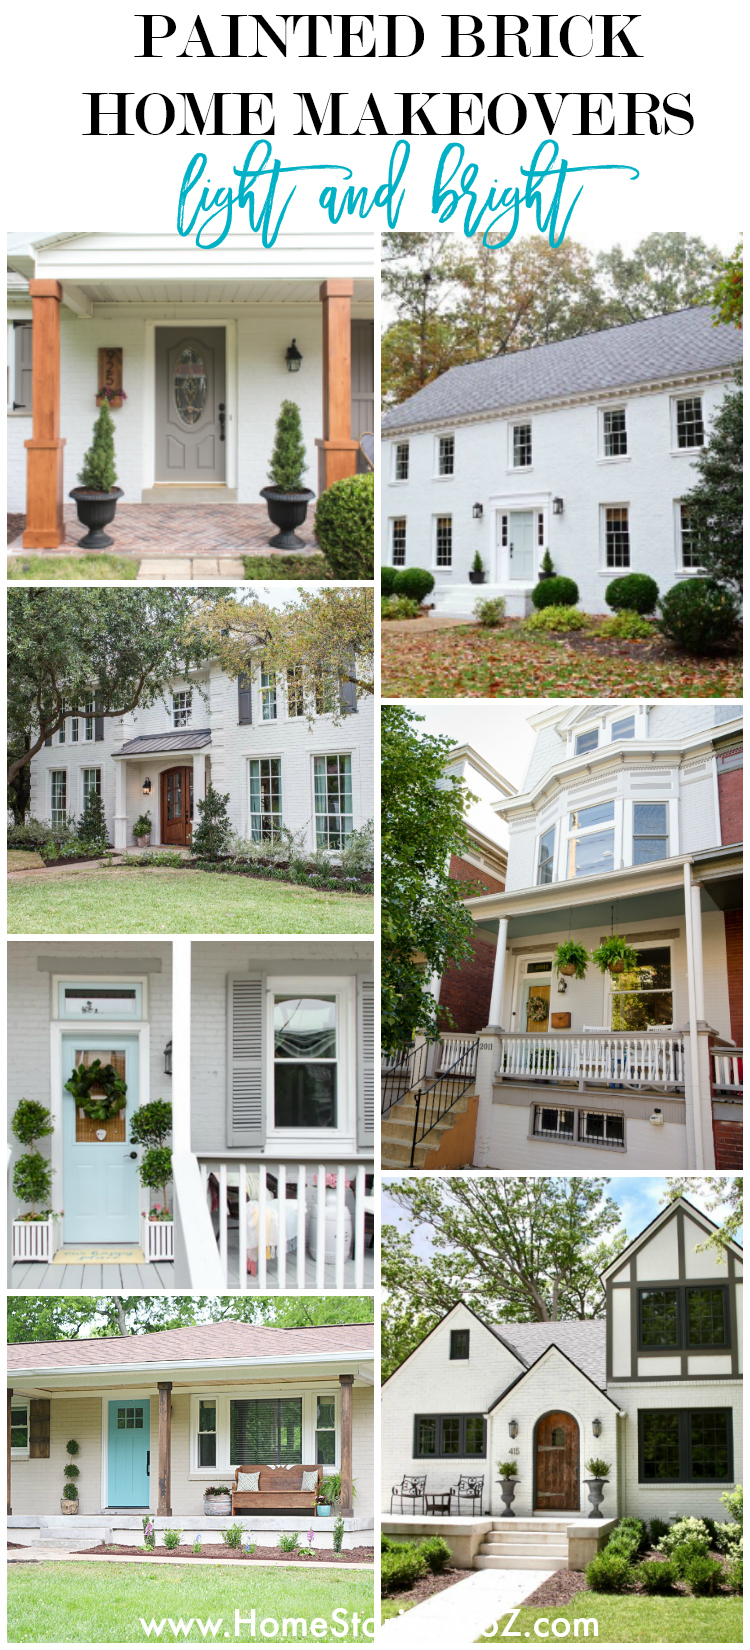 Painted Brick Home Exterior Makeover Before and After Ideas on Brick House Painting Ideas  id=74668